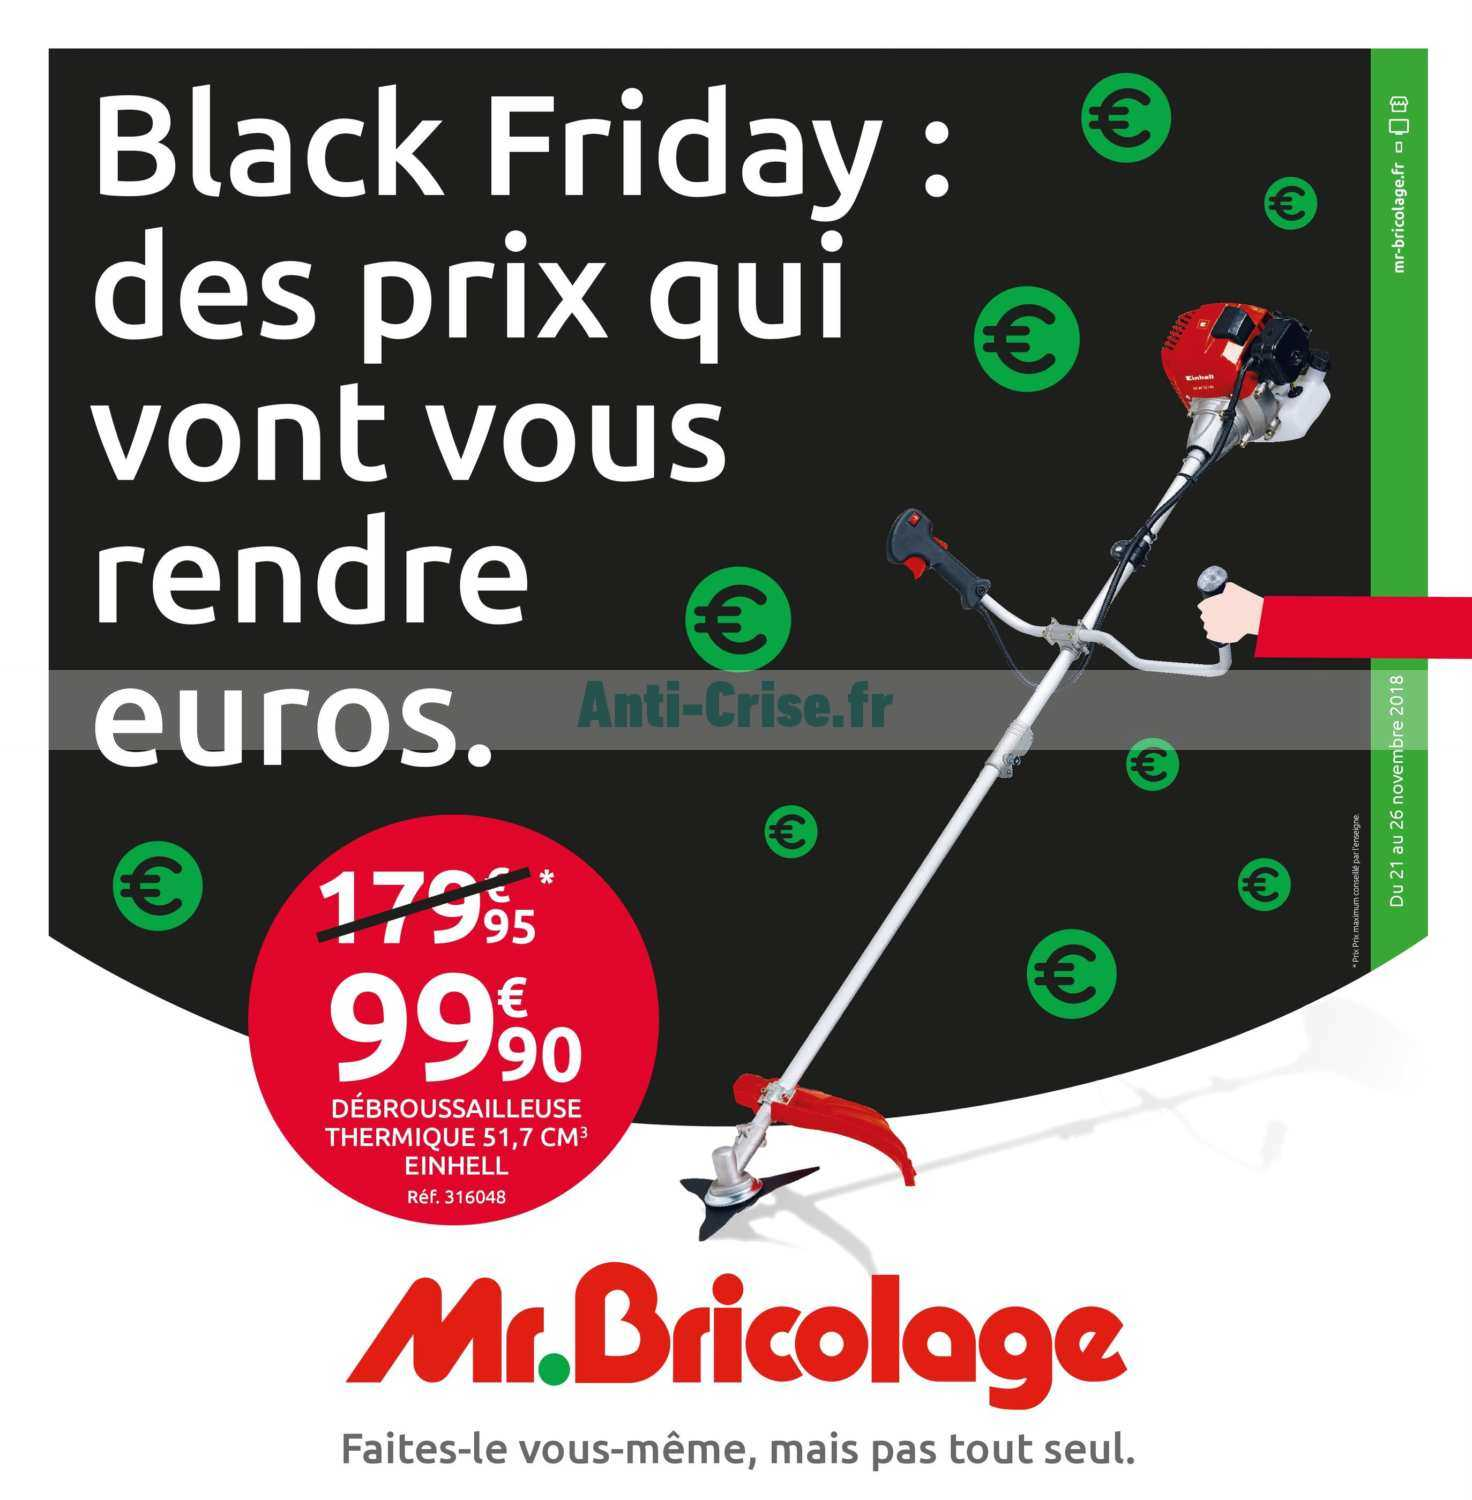 catalogue mr bricolage du 21 au 26 novembre 2018 catalogues promos bons plans economisez. Black Bedroom Furniture Sets. Home Design Ideas